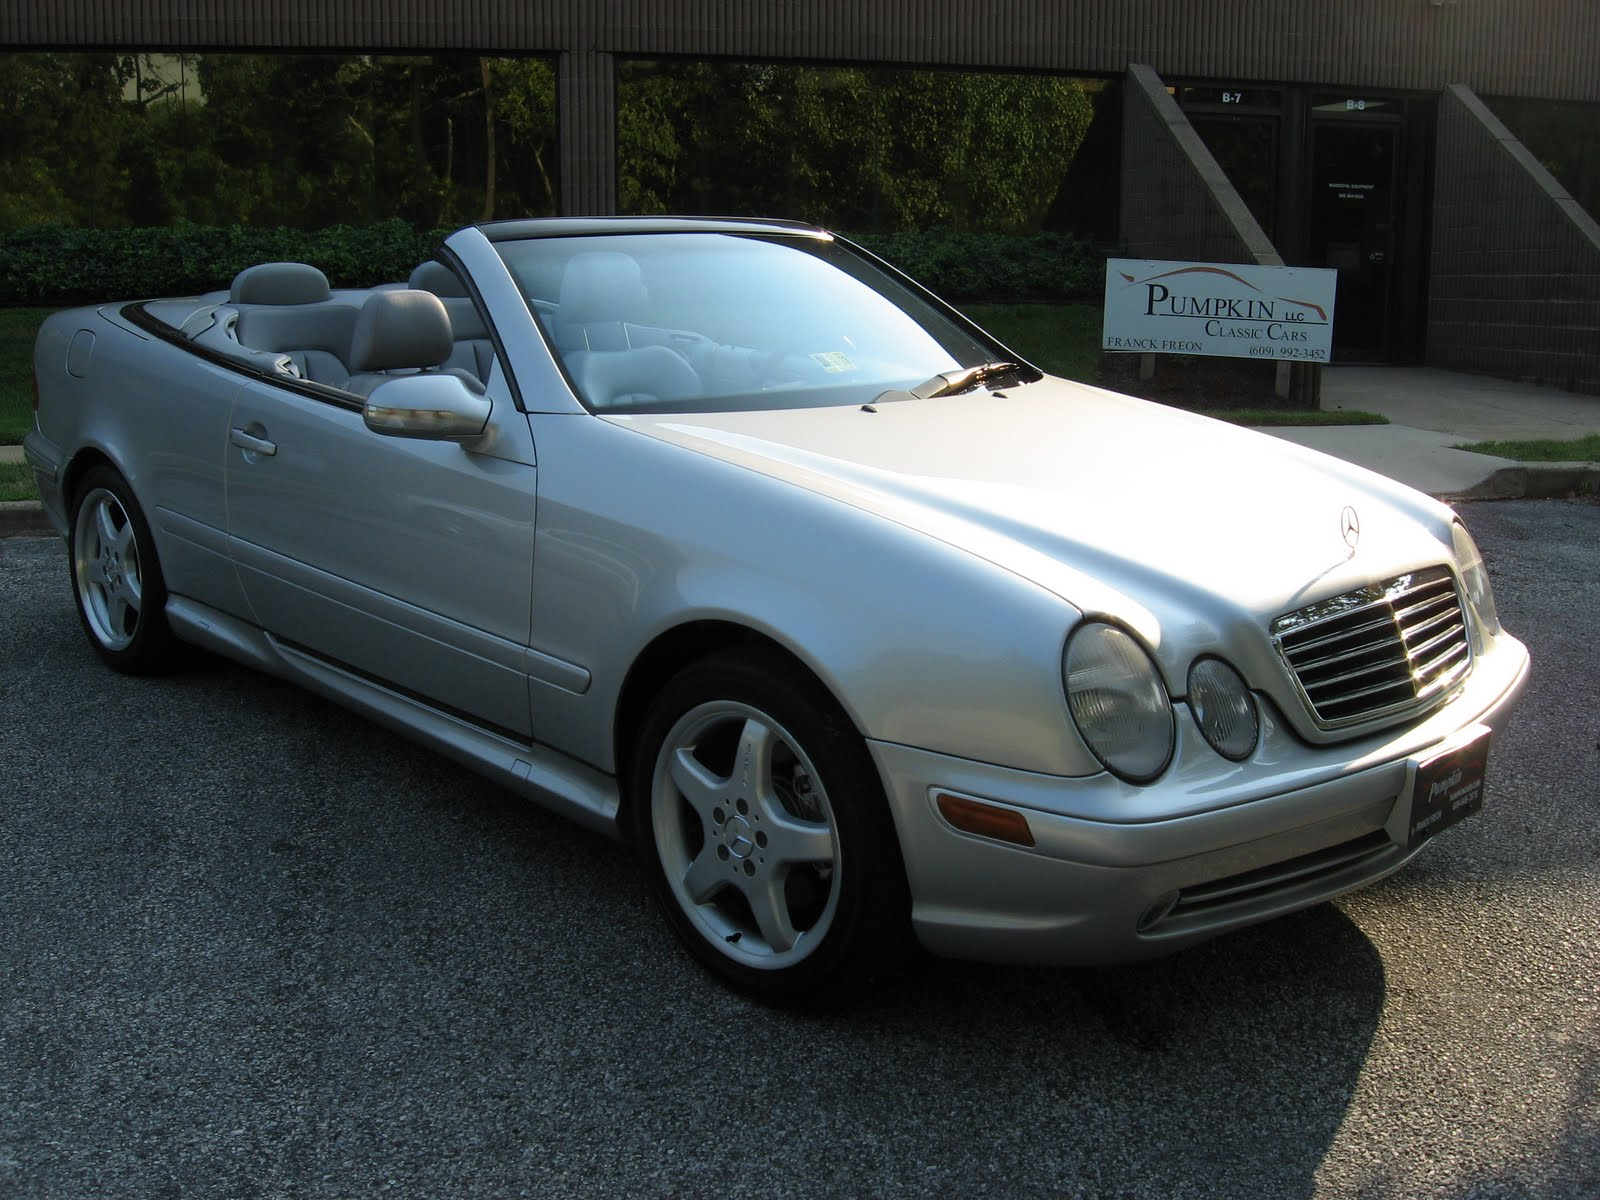 pumpkin fine cars and exotics 2002 mercedes benz clk430 cabriolet. Black Bedroom Furniture Sets. Home Design Ideas